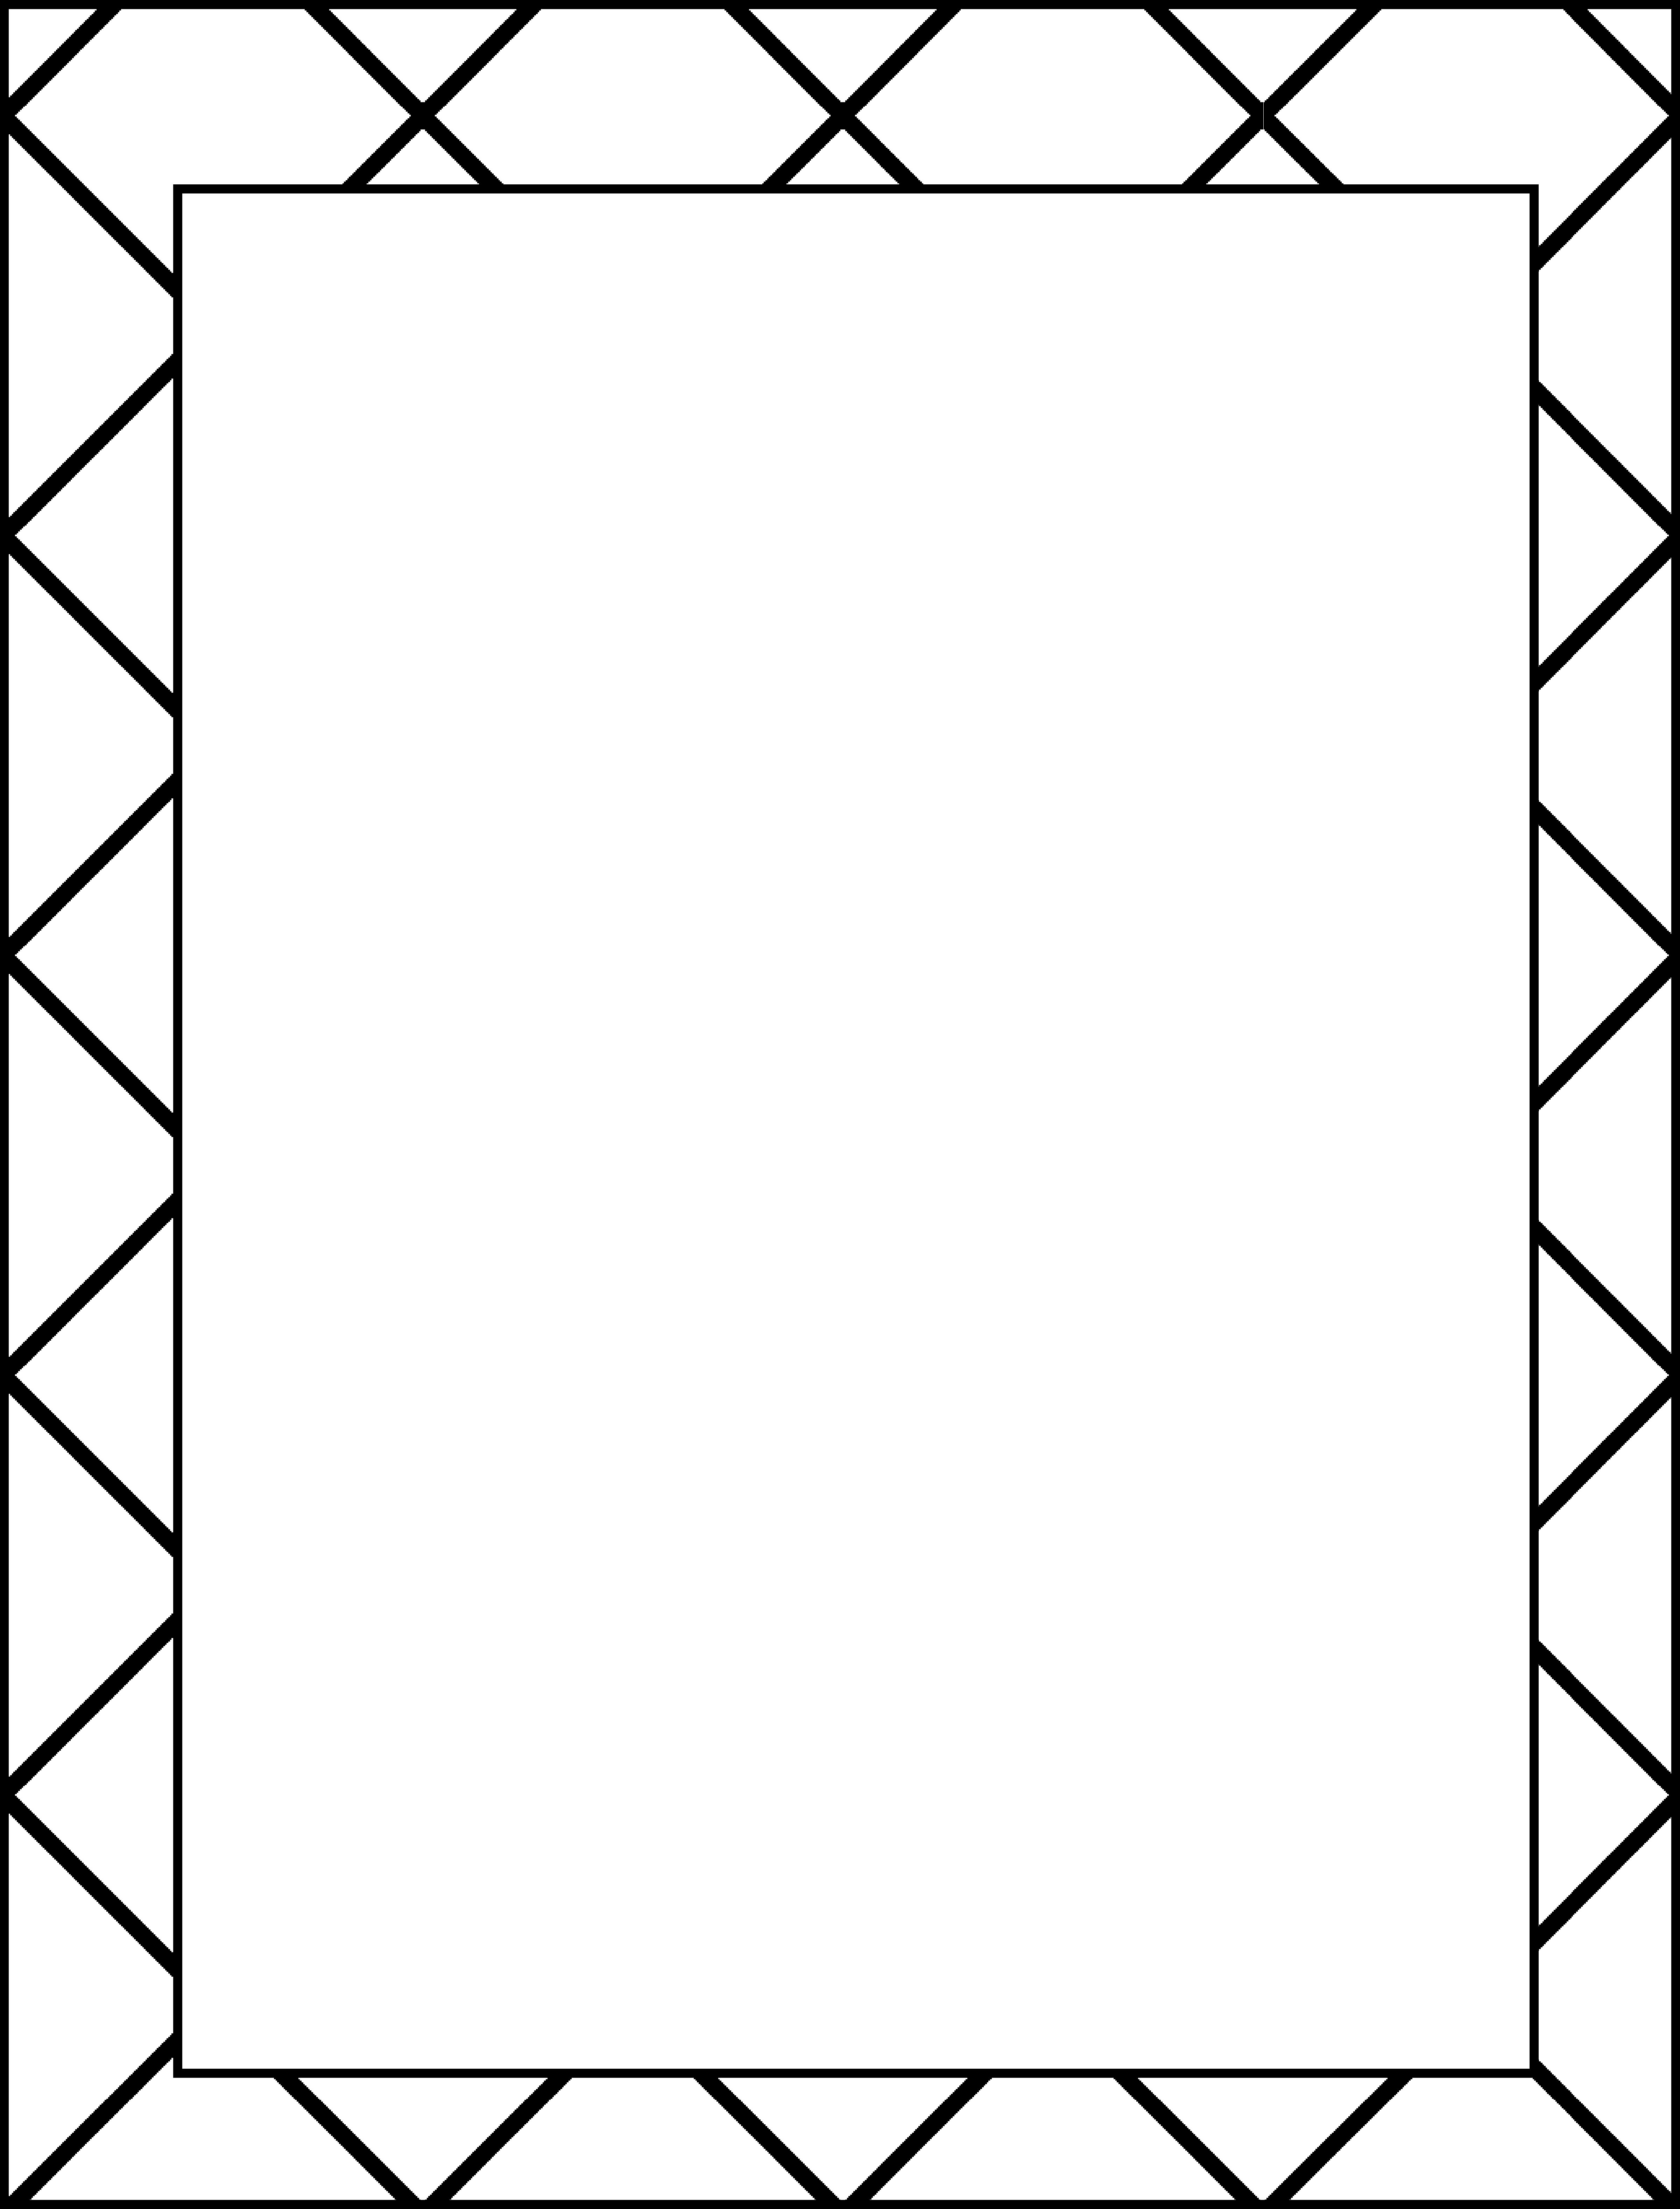 simple frame border design. 4802x6314 Simple Border Designs For School Projects Collection (74+) Frame Design